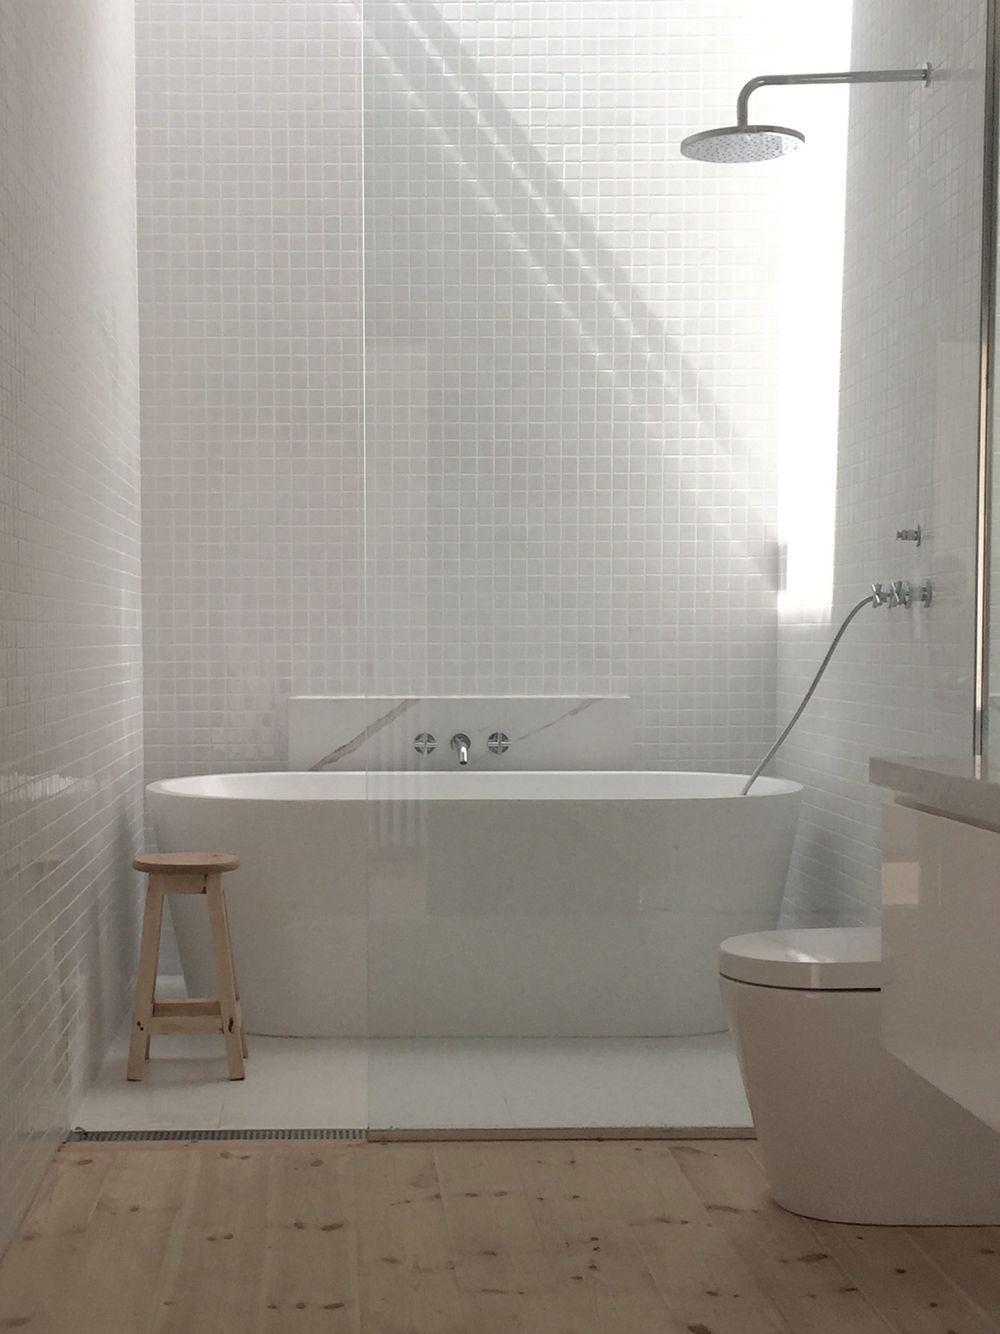 Main Bathroom, Gloss white 30x30 tiles, Matt White 600 x 600 tiles, Baltic